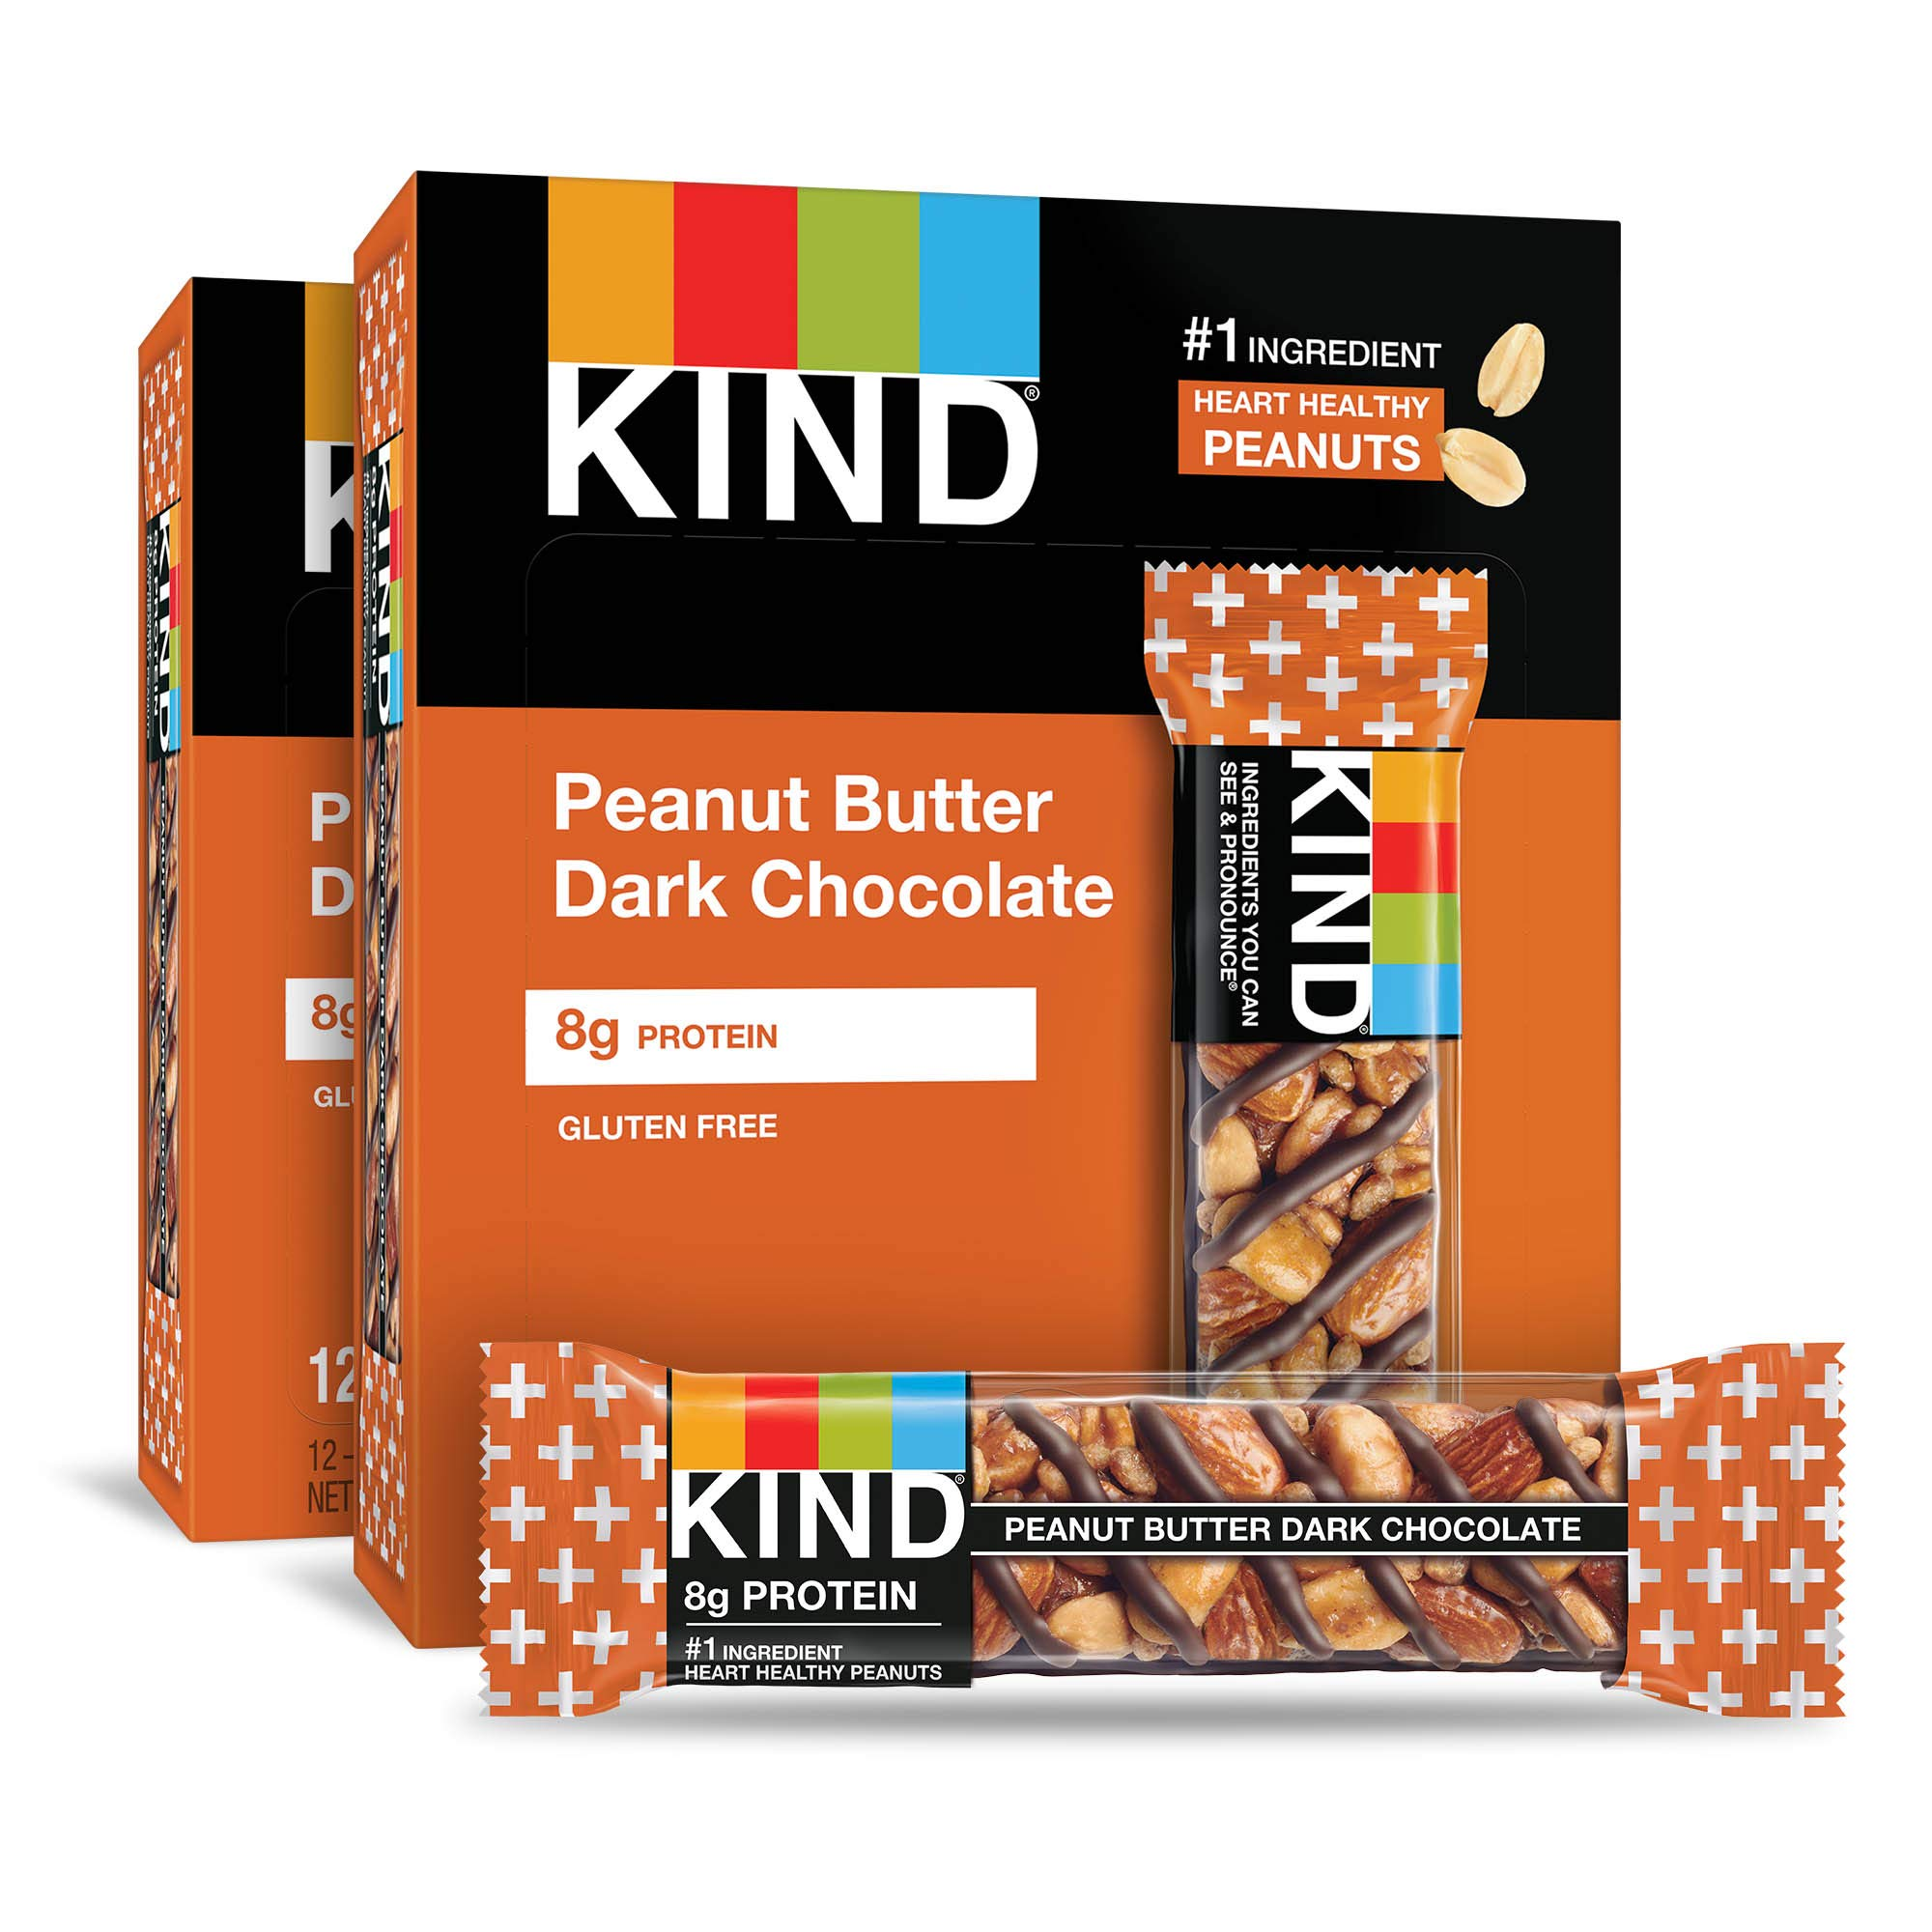 KIND Bars, Peanut Butter Dark Chocolate, 8g Protein, Gluten Free, 1.4 Ounce Bars, 24 Count by KIND